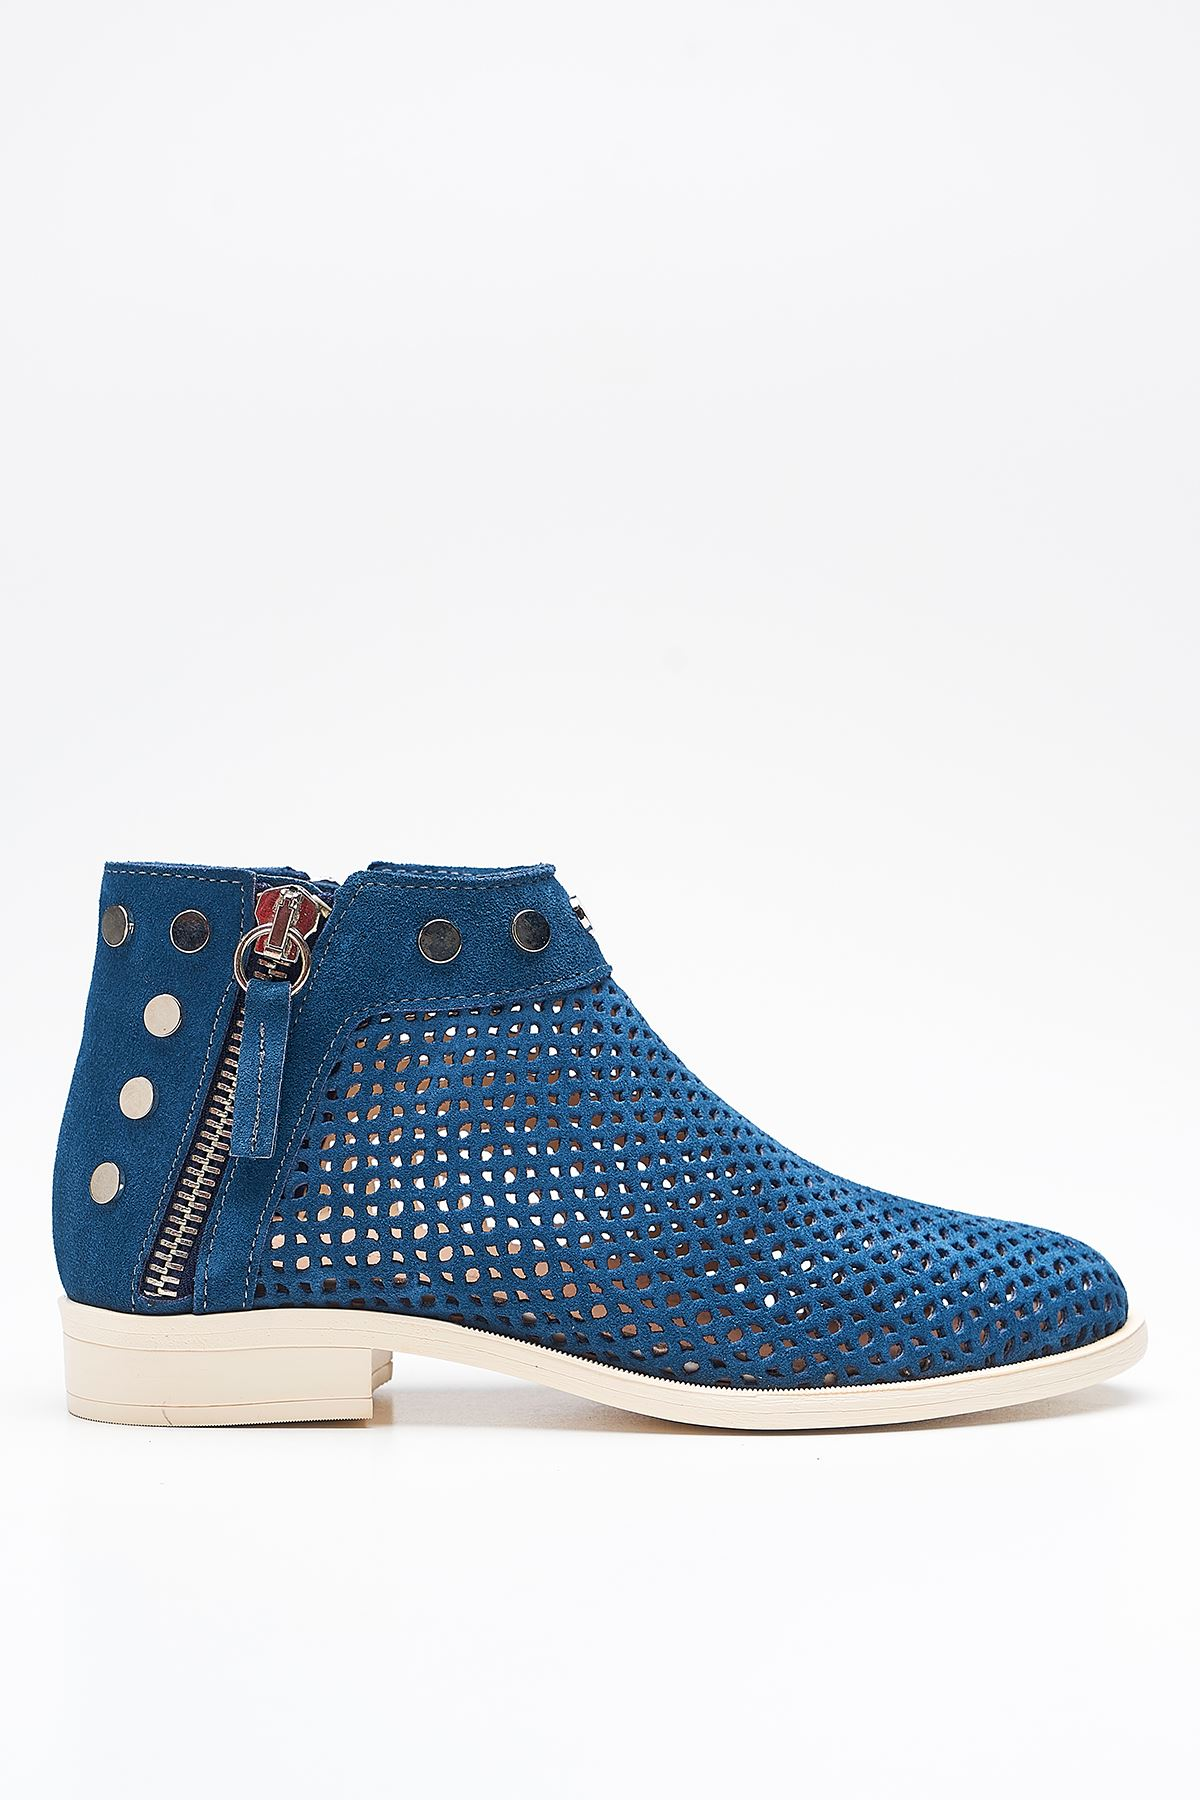 Shore Blue Genuine Leather Women's Summer Boots